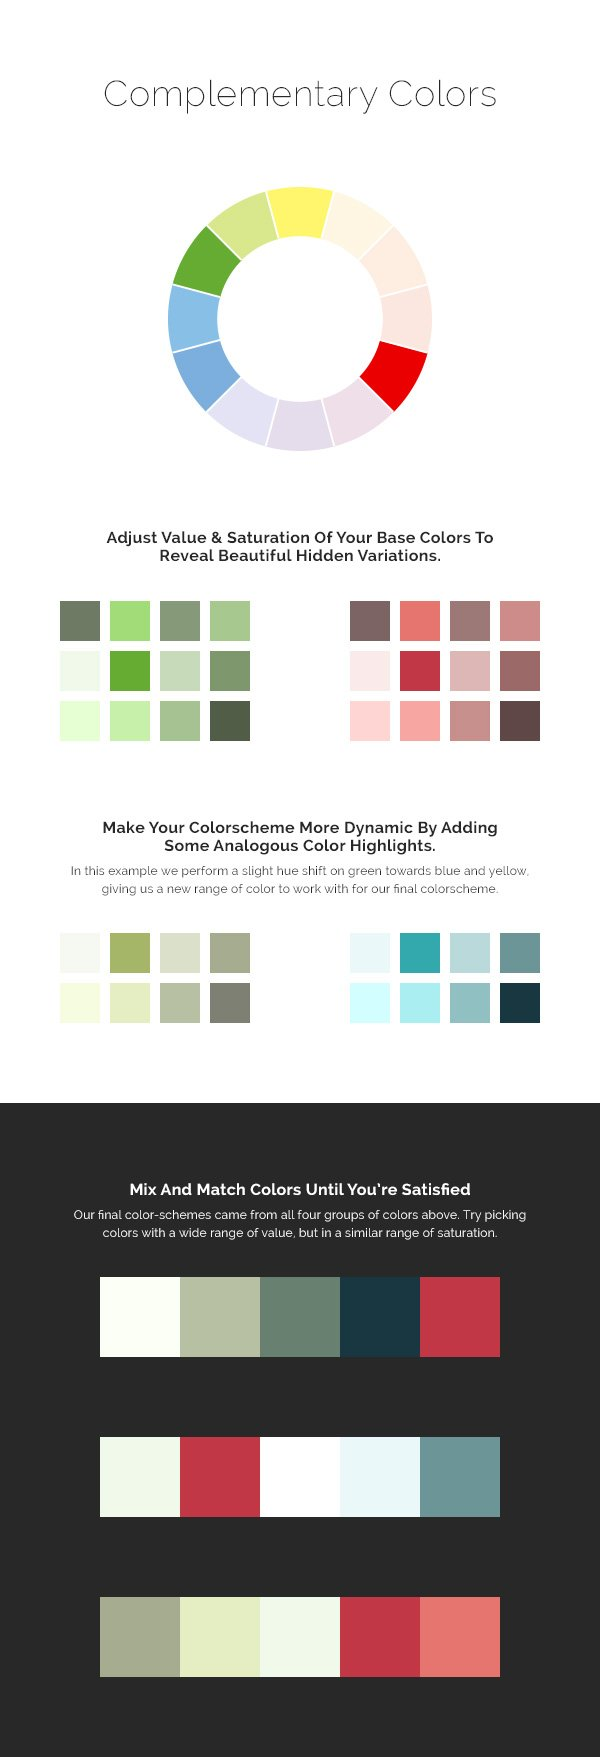 Use Complimentary Colors To Begin A Beautiful Color Scheme